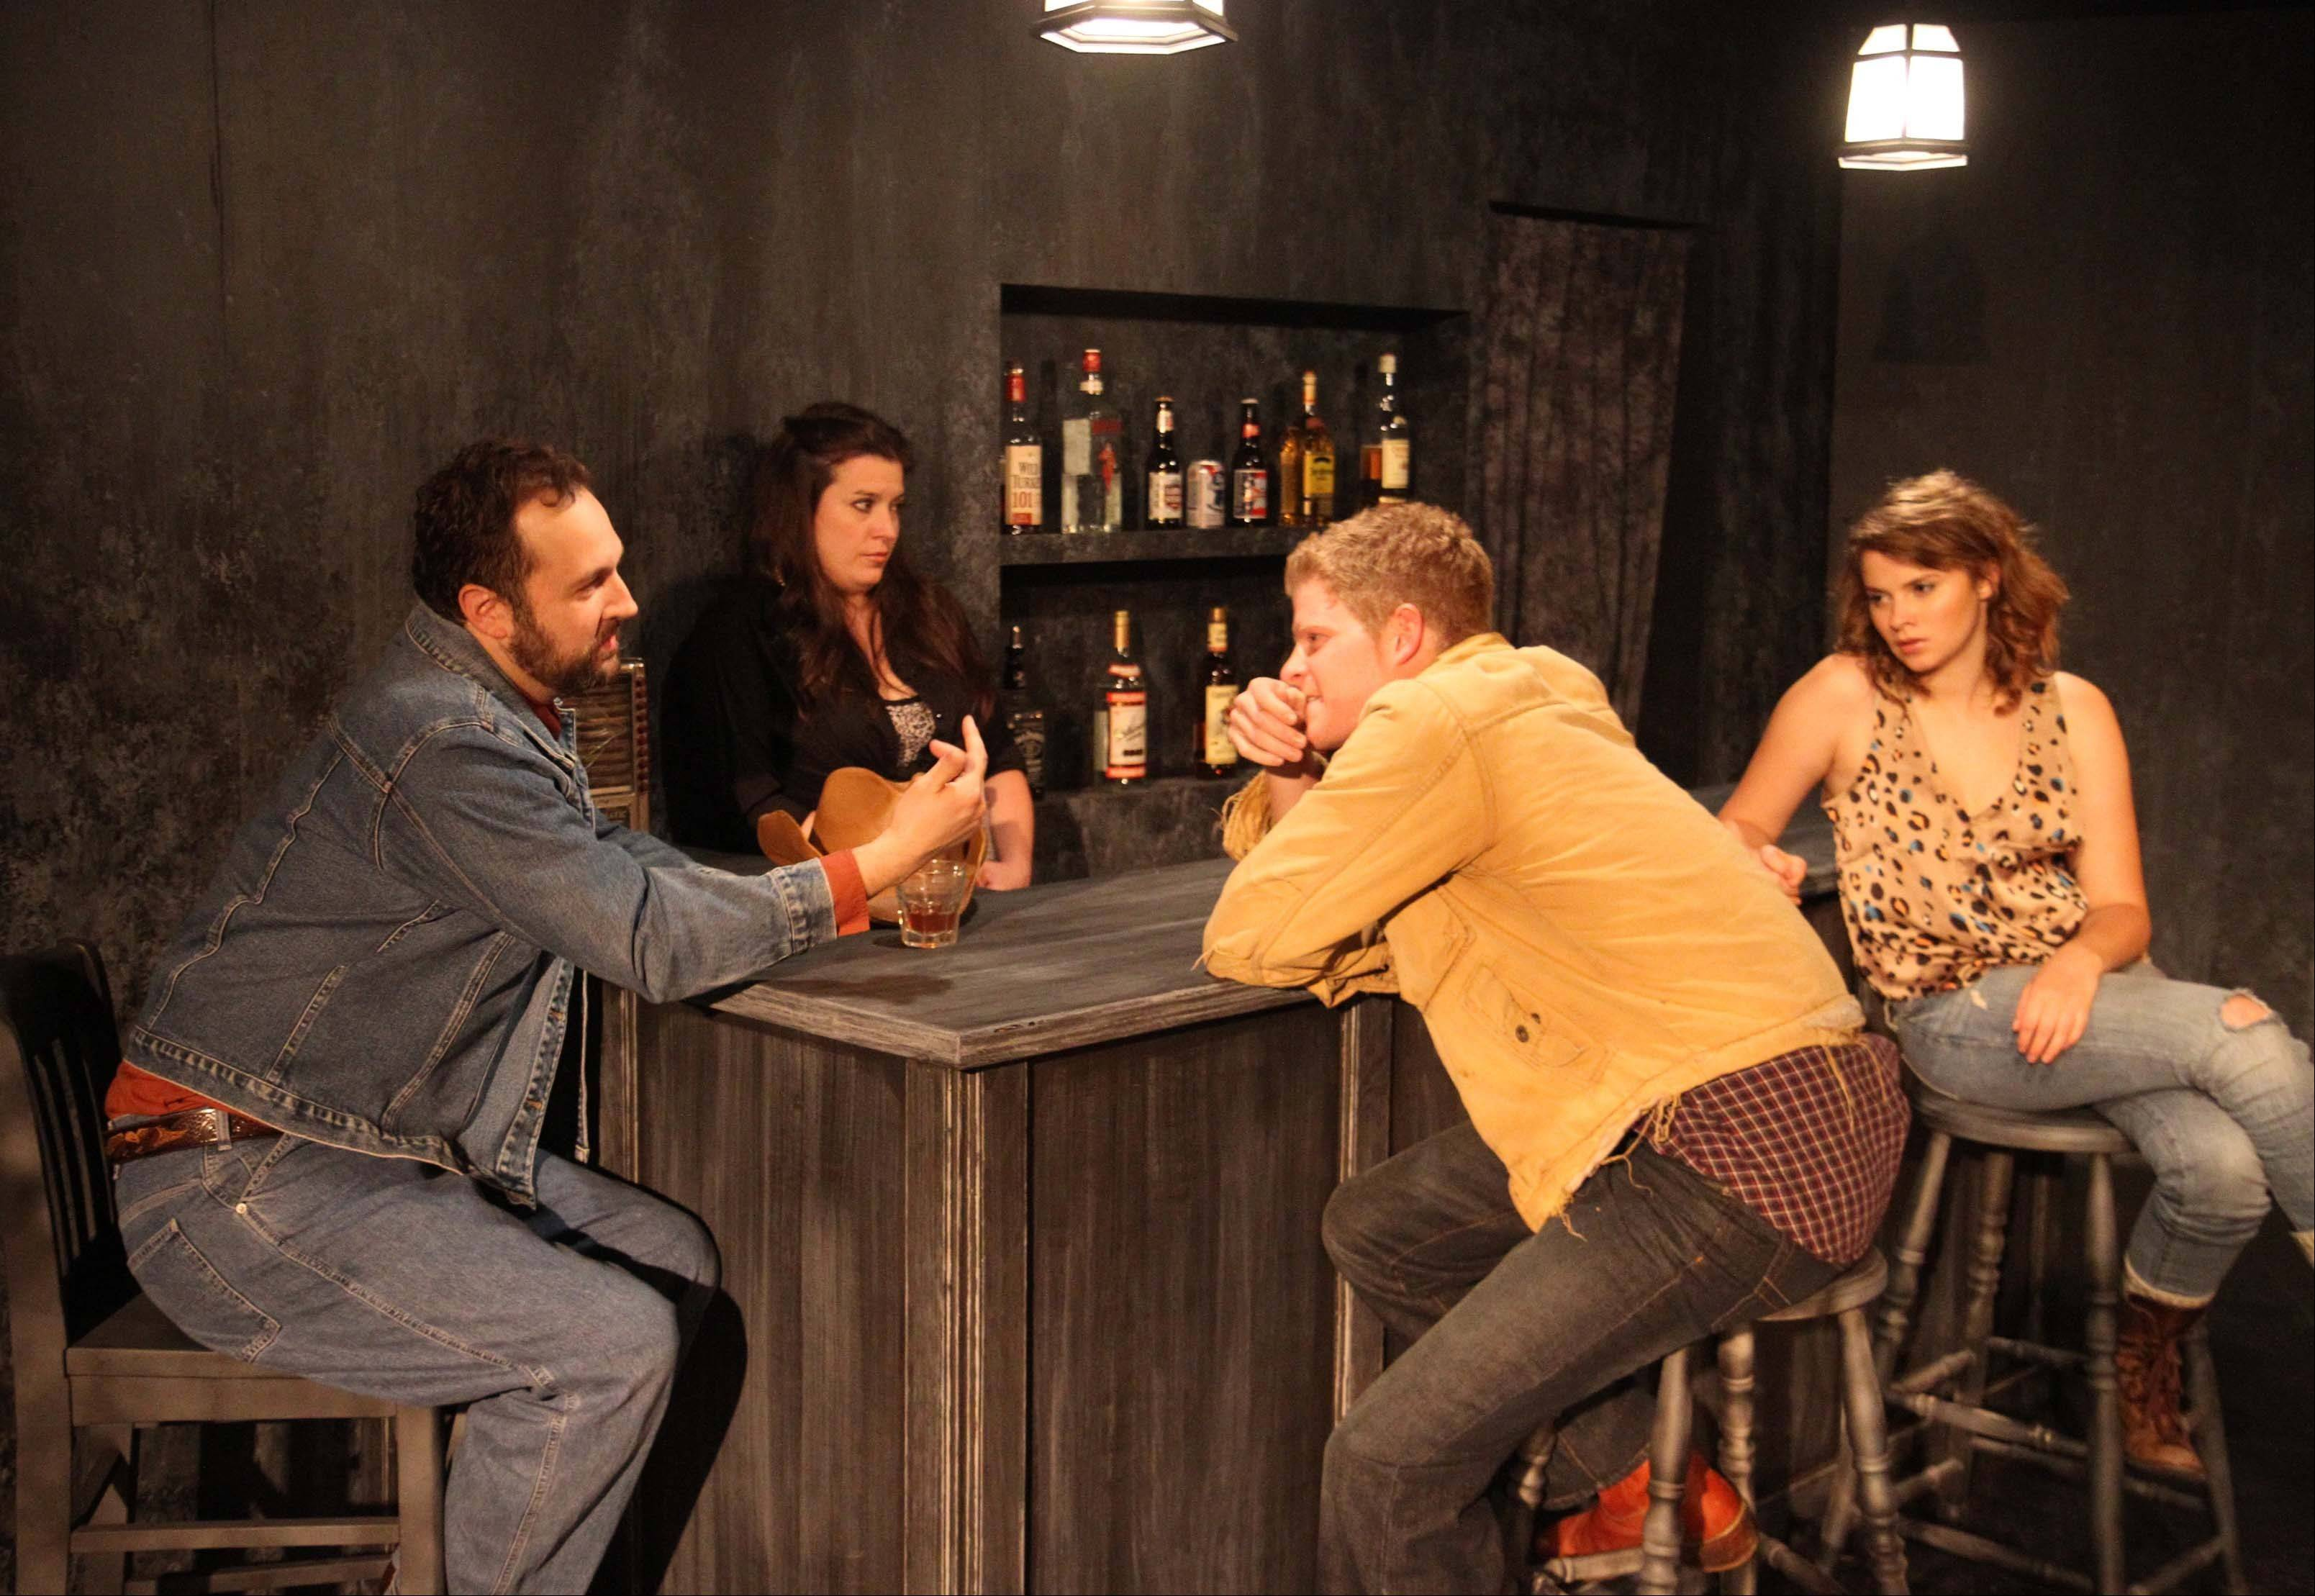 "Love and betrayal play out in a Texas dive bar in Robert Askins' gritty drama ""Princes of Waco."" Signal Ensemble Theatre's Chicago-area premiere stars Joseph Stearns, left, as Fritz, a petty criminal, and Rob Fenton, second from right, as wannabe bad boy Jim. Rounding out the cast is Carolyn Braver's restless Esme, right, and Meredith Bell Alvarez's world-weary bartender Toasty."